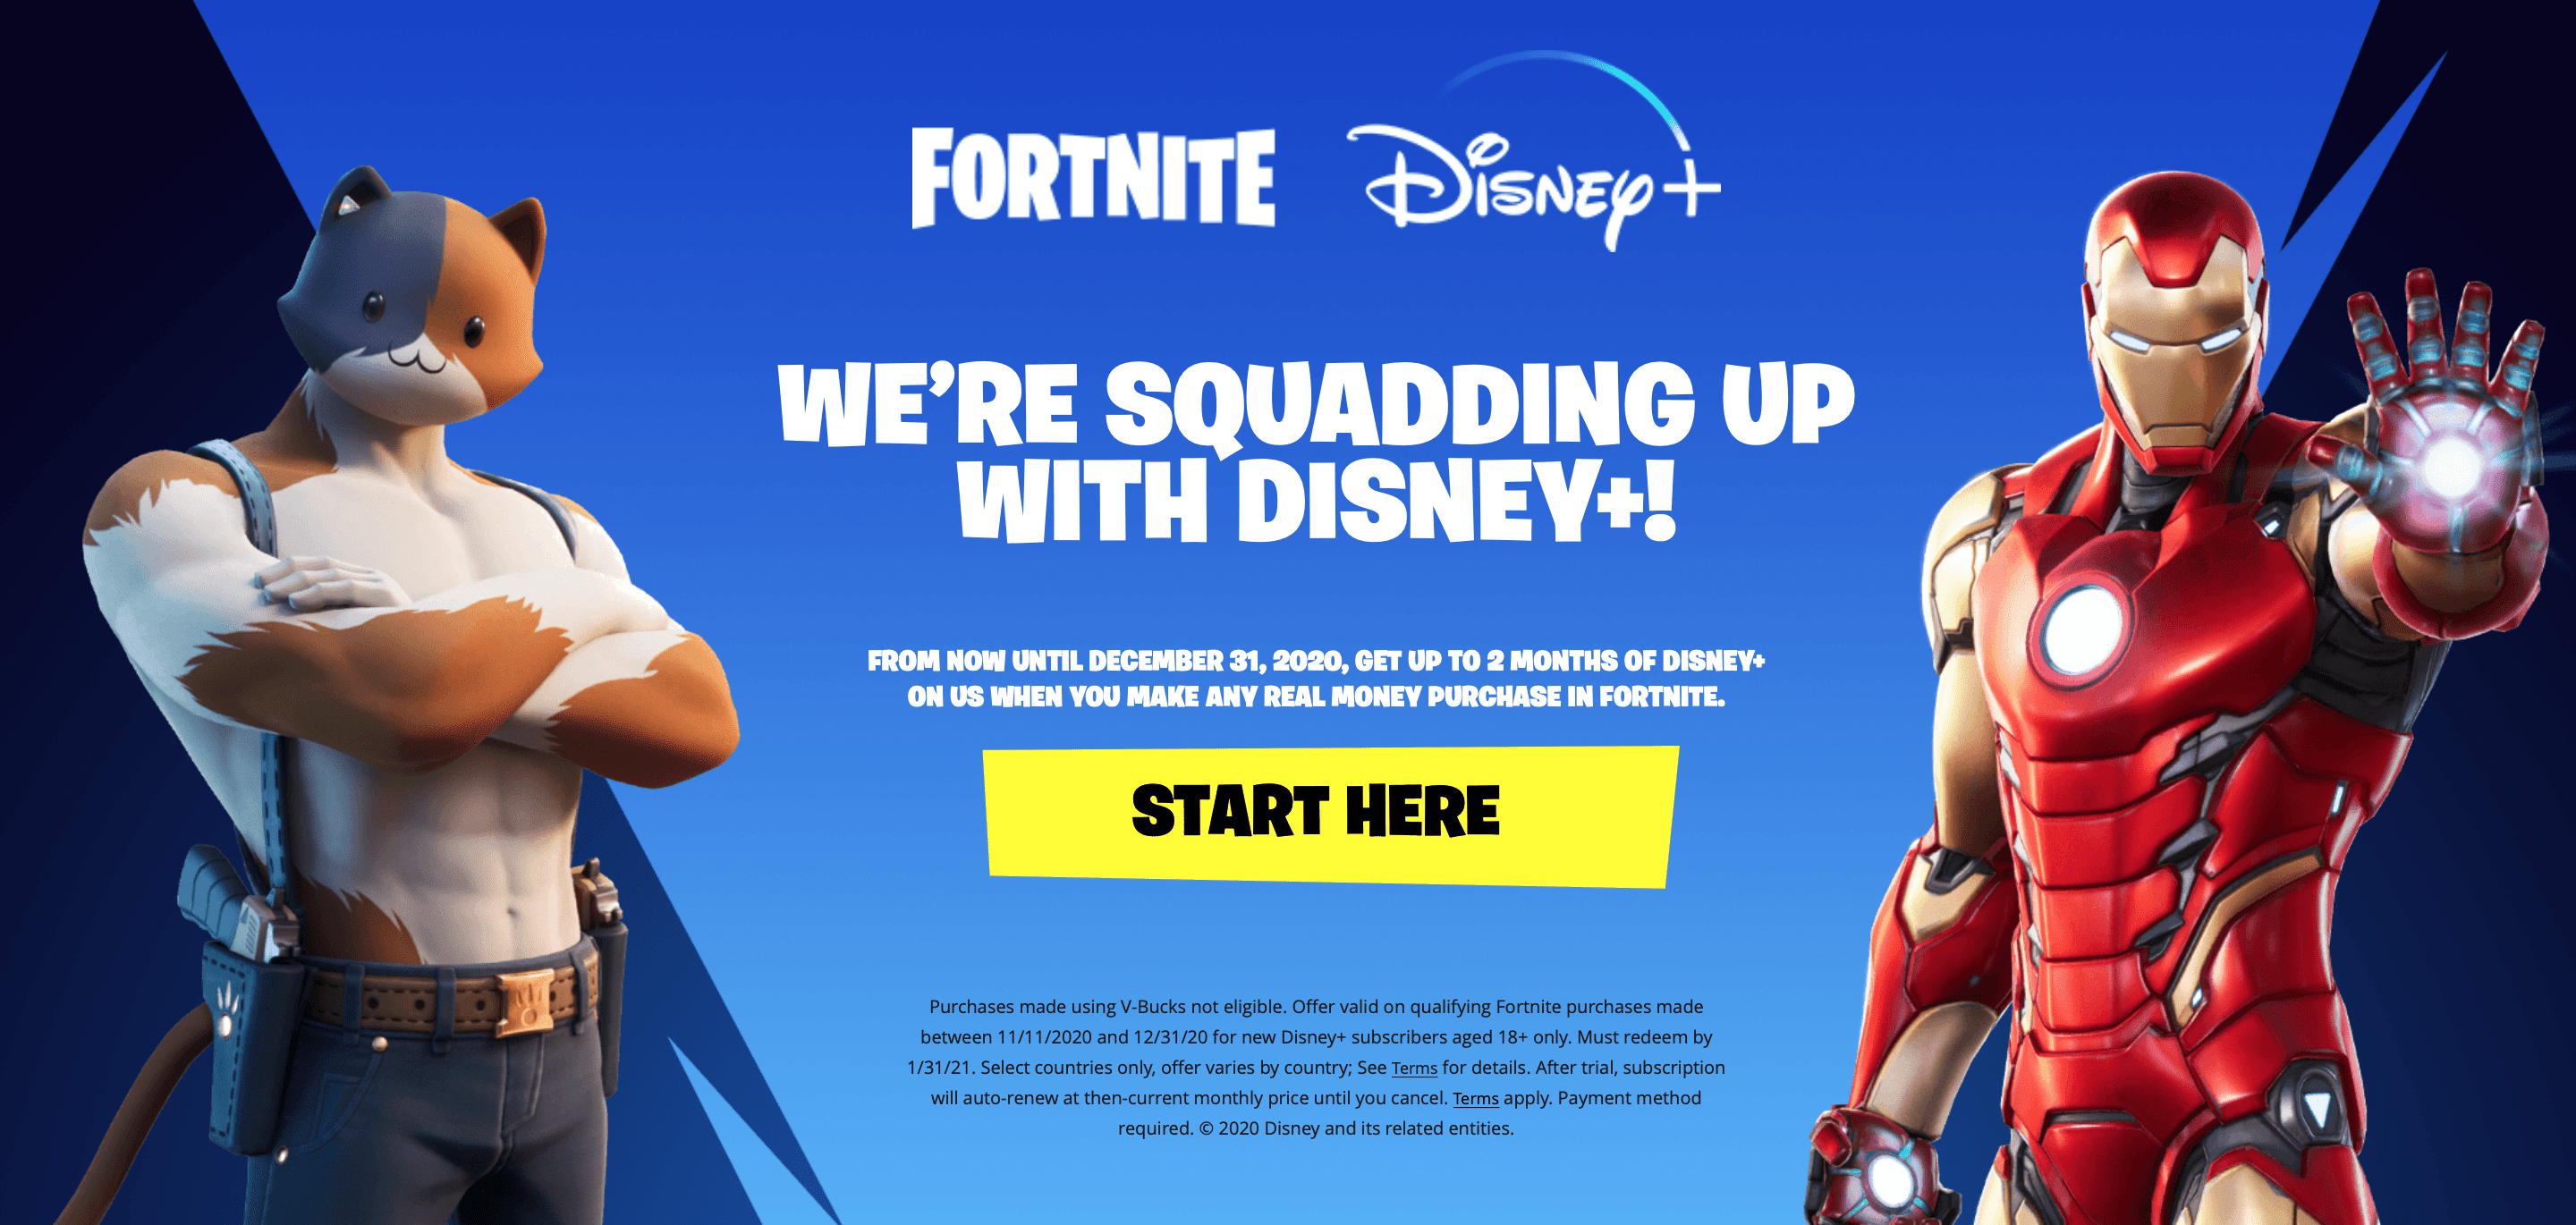 How to Use www.Fortnite.com/DisneyPlus Step by Step Photo/Video! [Source: Fortnite]